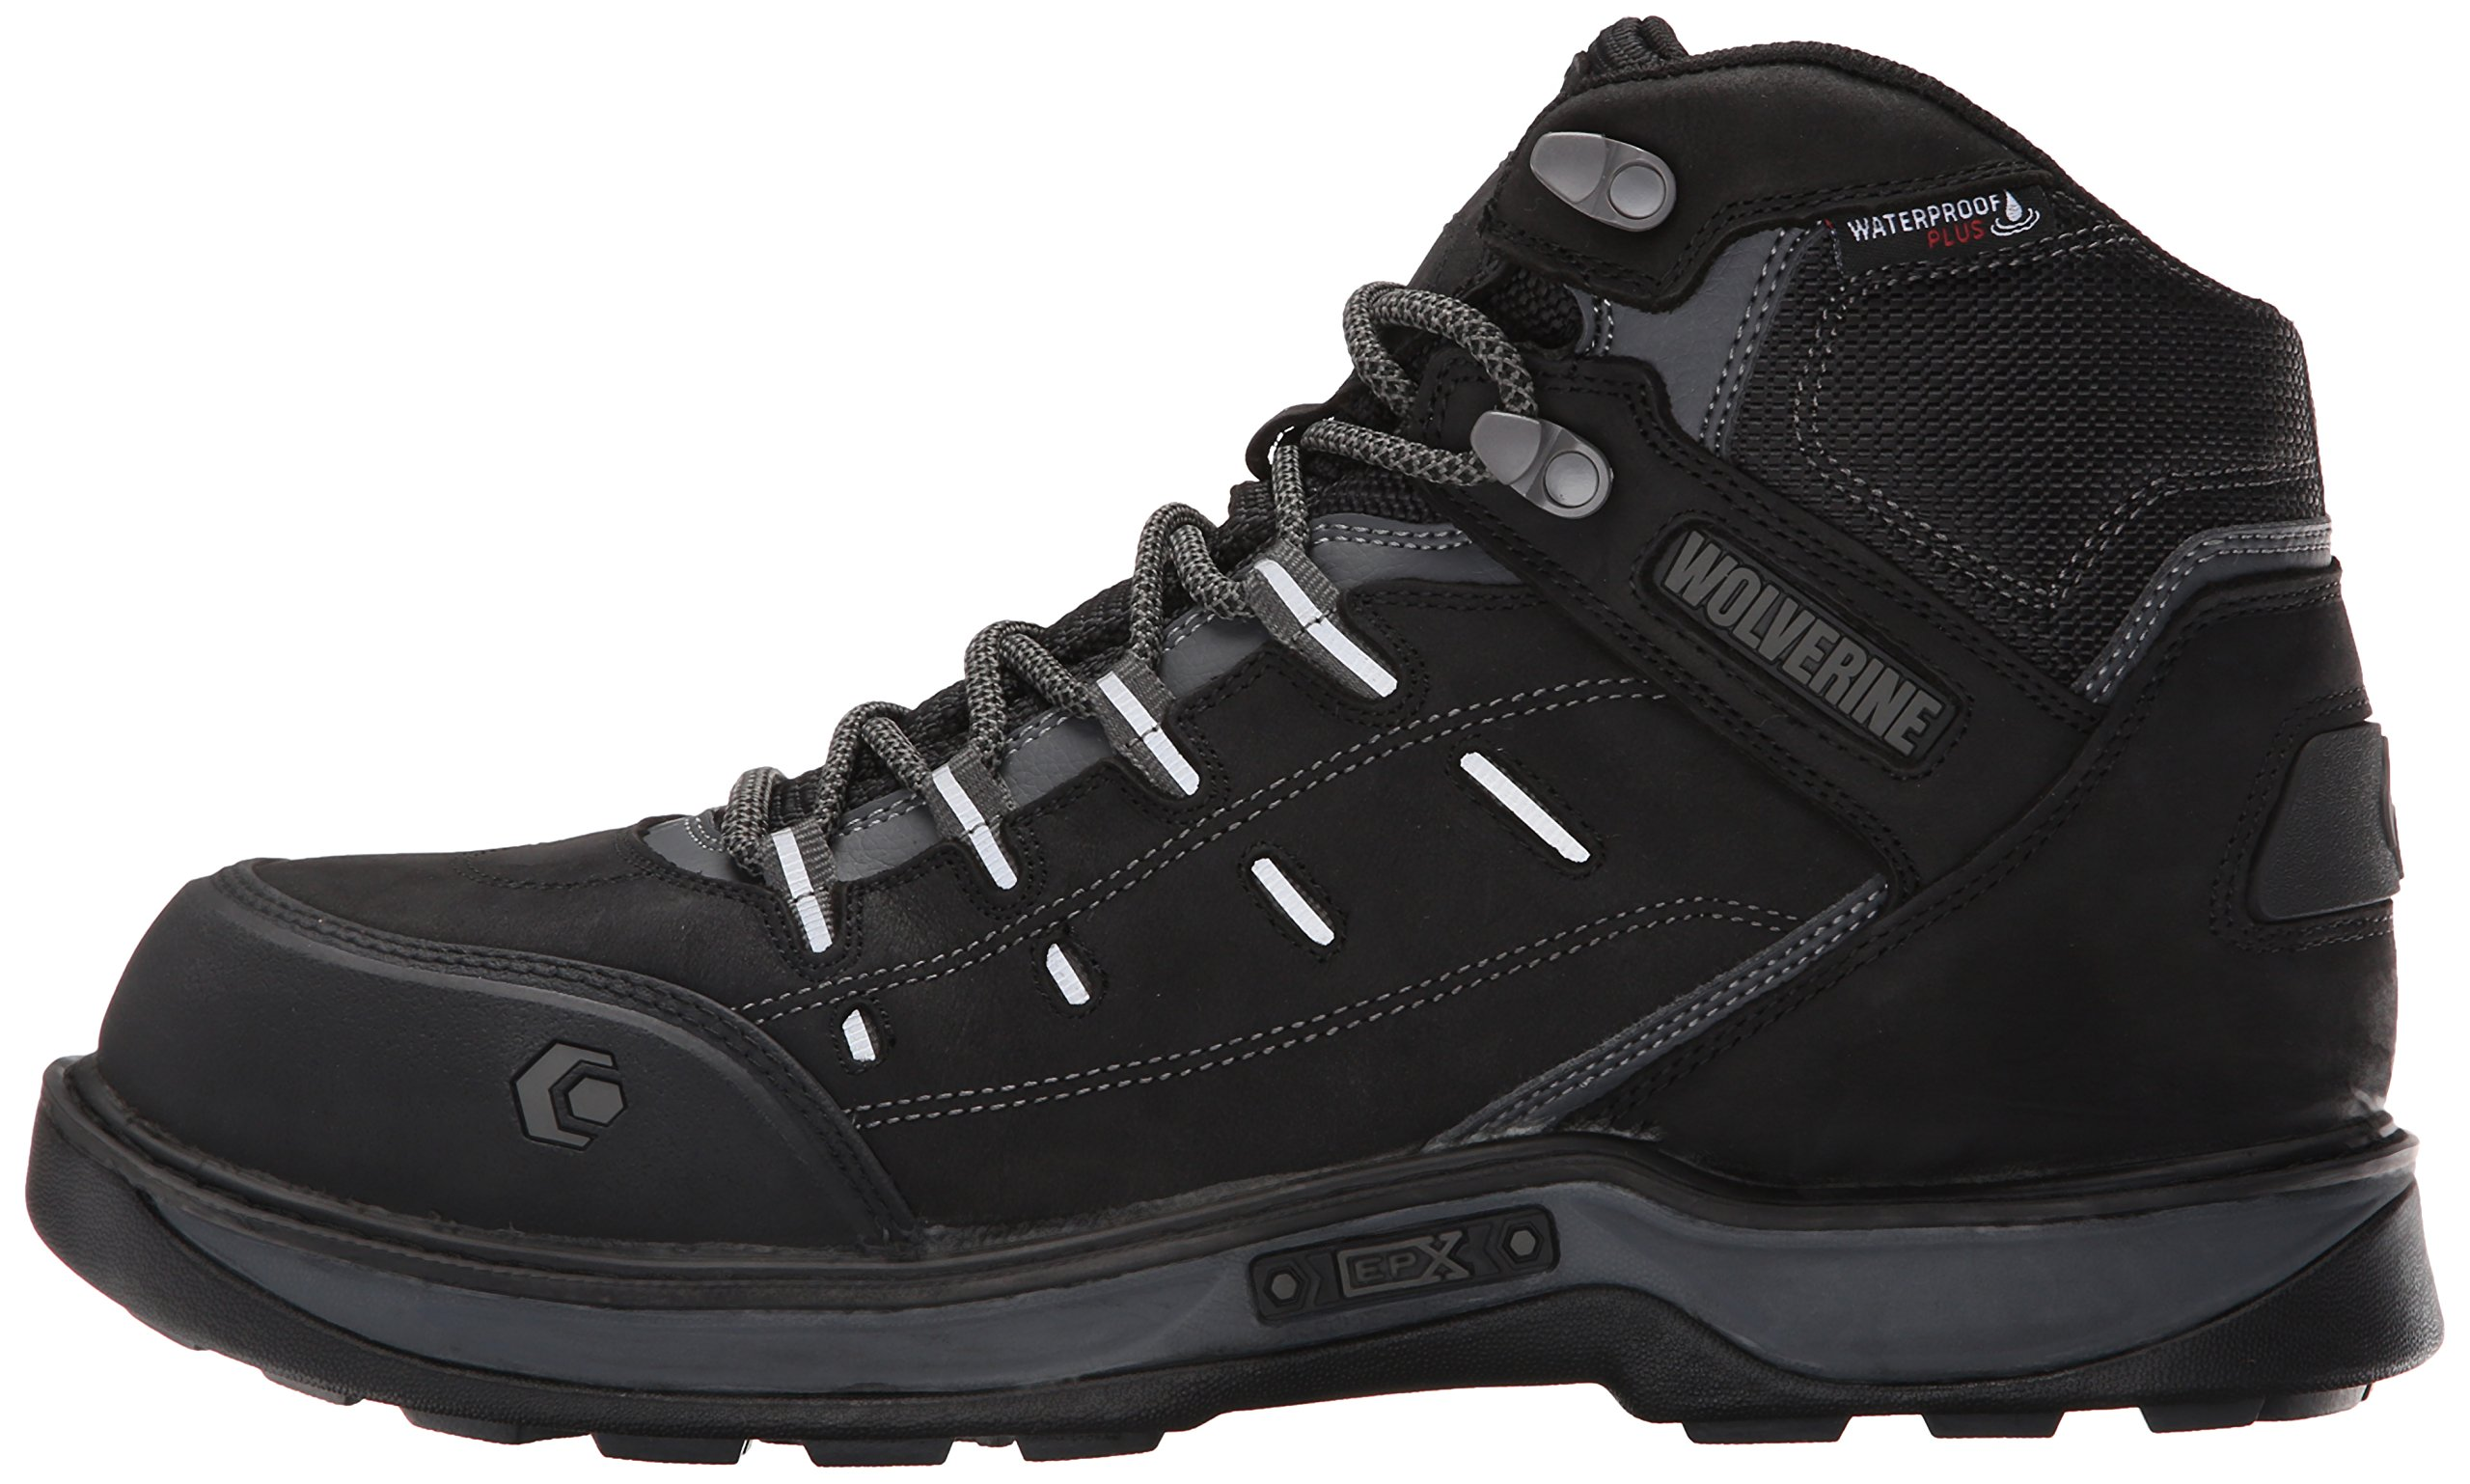 Wolverine Men's Edge LX Nano Toe Work Boot, Black/Grey, 11.5 M US by Wolverine (Image #5)